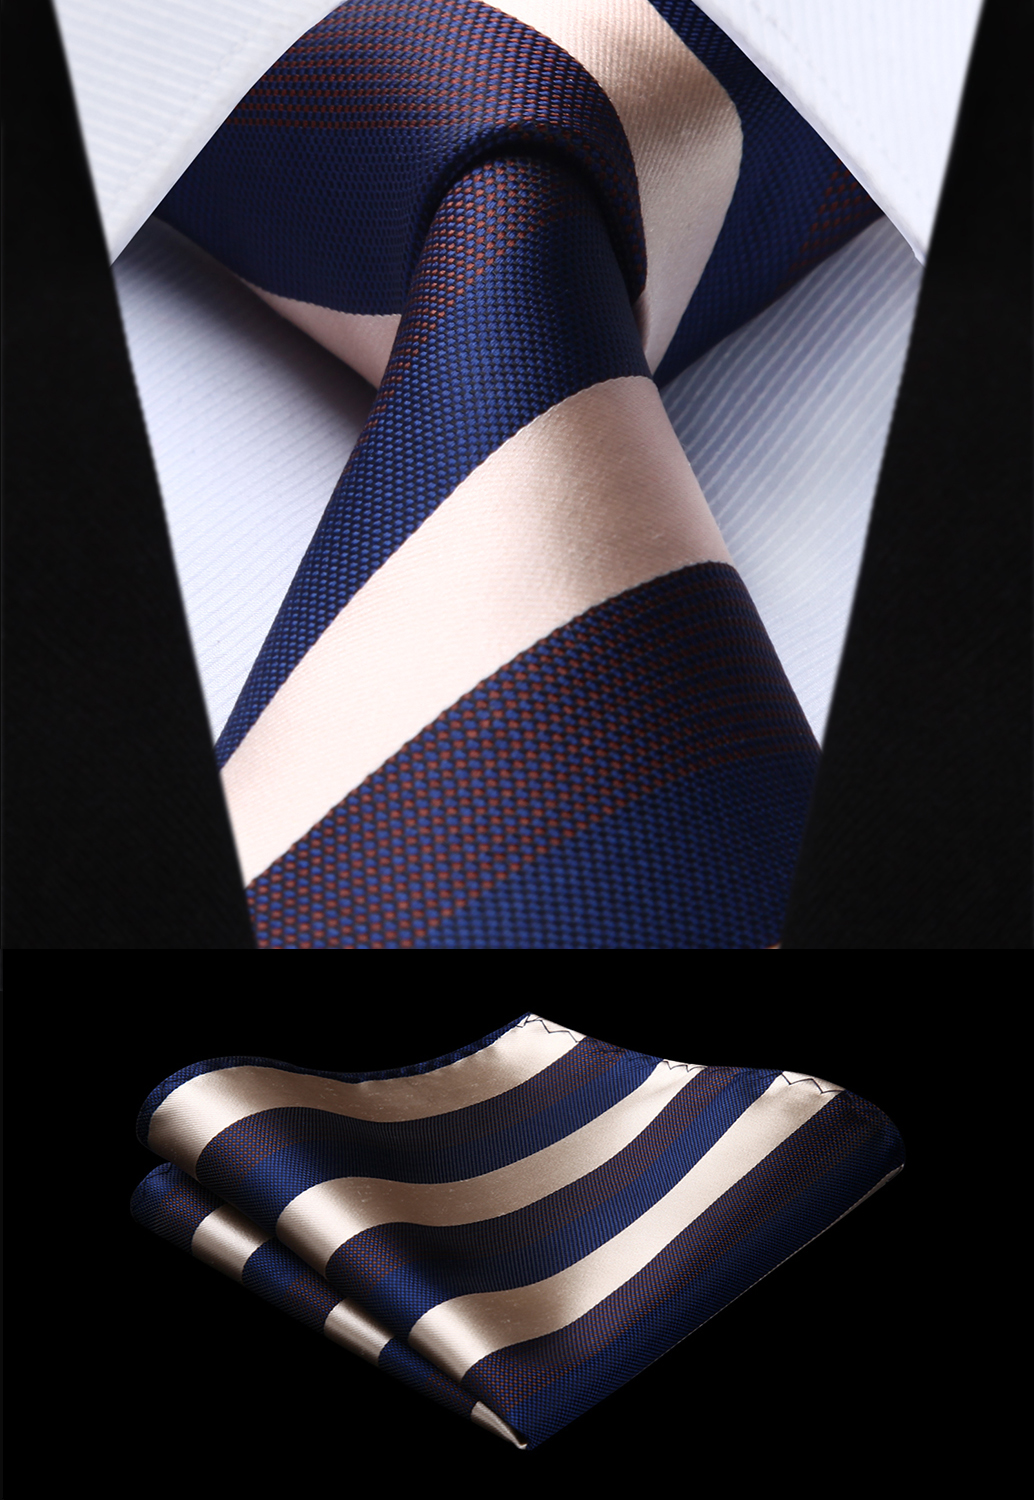 Party Wedding Classic Fashion Pocket Square Tie Woven Men Tie Blue White Striped  Necktie Handkerchief Set#TS909B8S